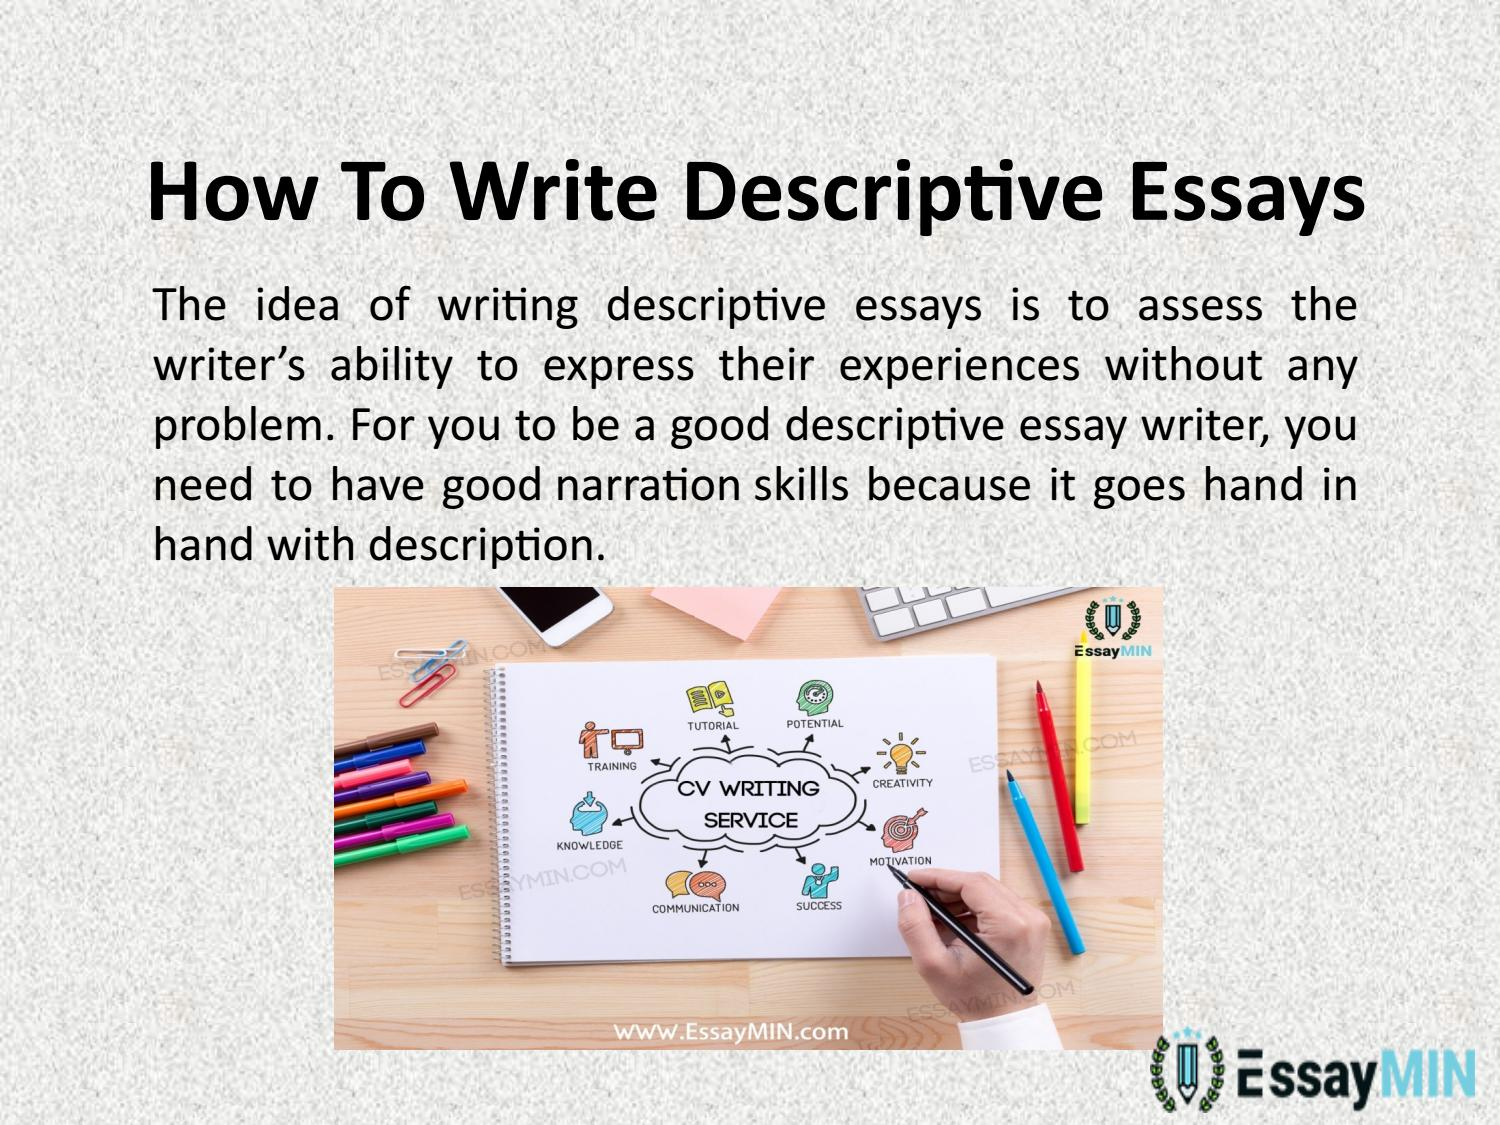 EssayMin is one of the best writing service providers for